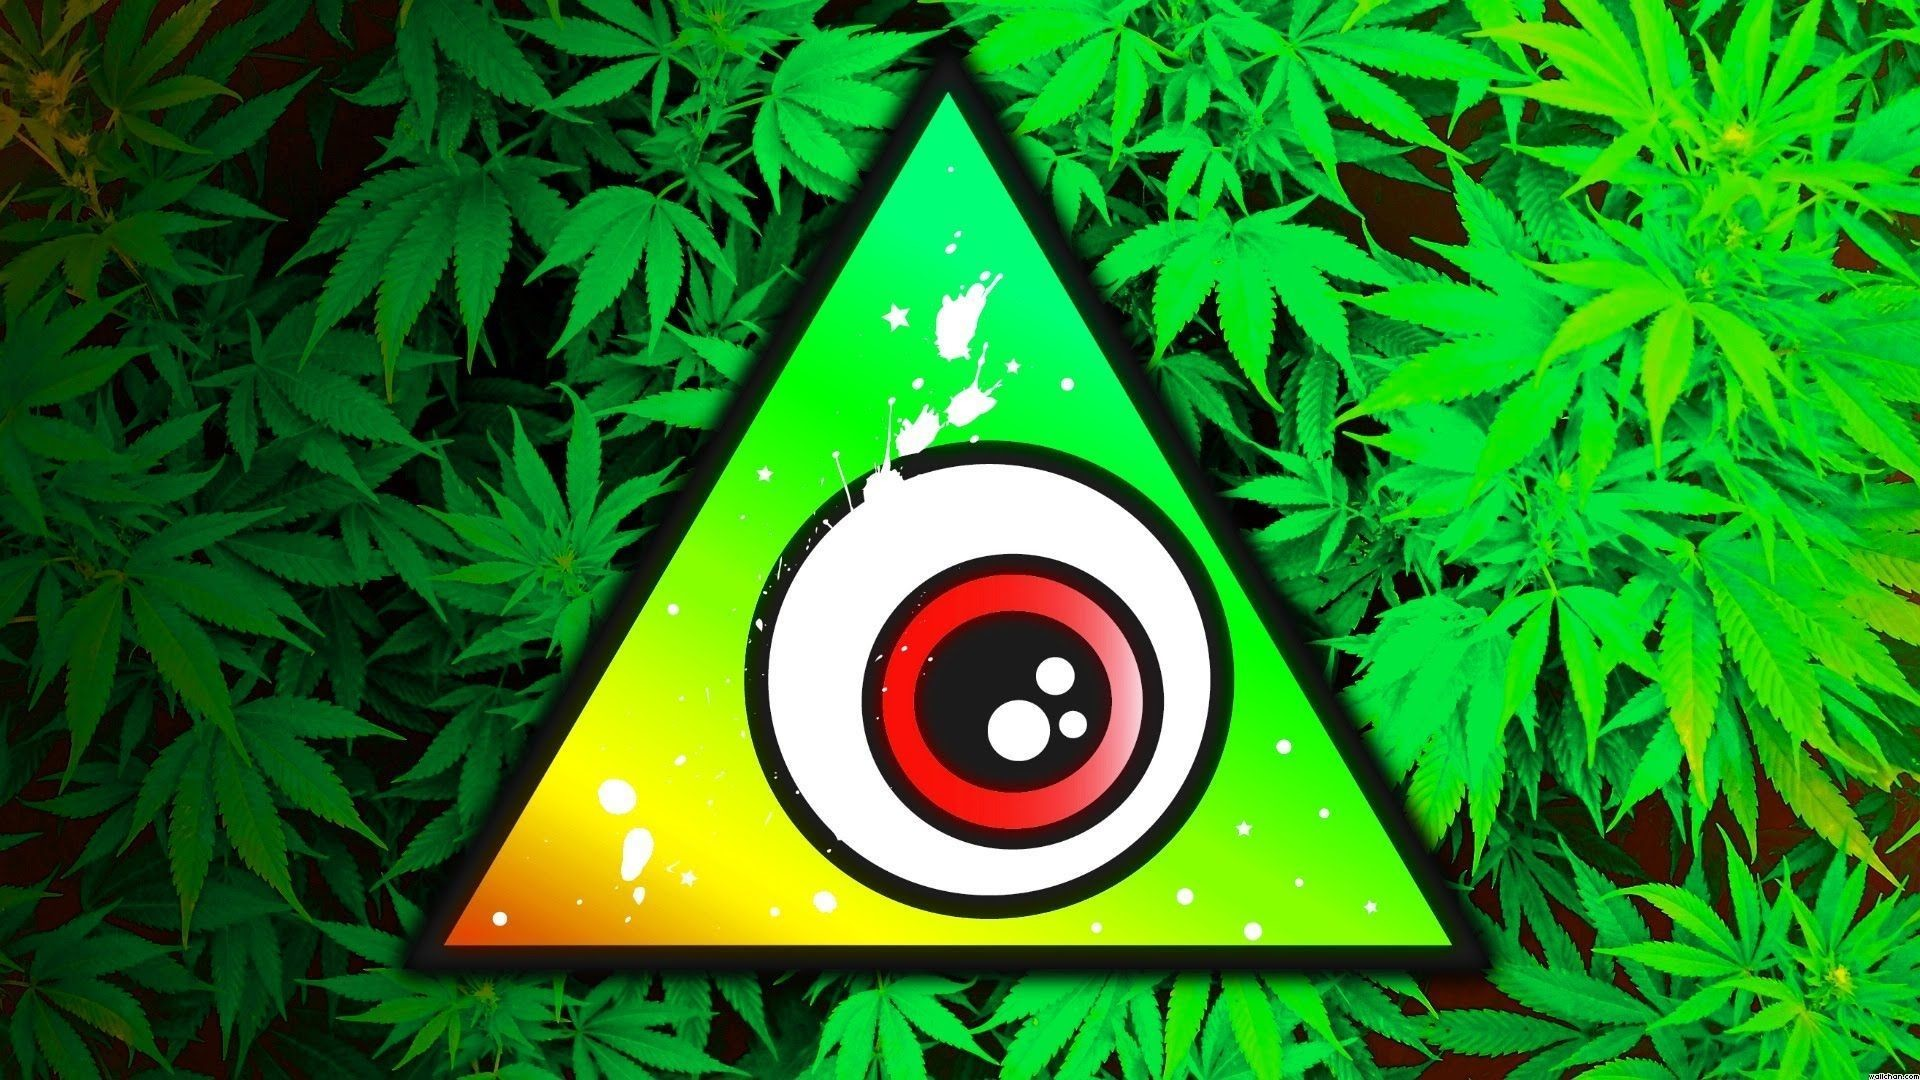 Cool Collections of Trippy Stoner Wallpapers Gallery (55 Plus) –  juegosrev.com For Desktop, Laptop and Mobiles. Here You Can Download More  than 5 Million …